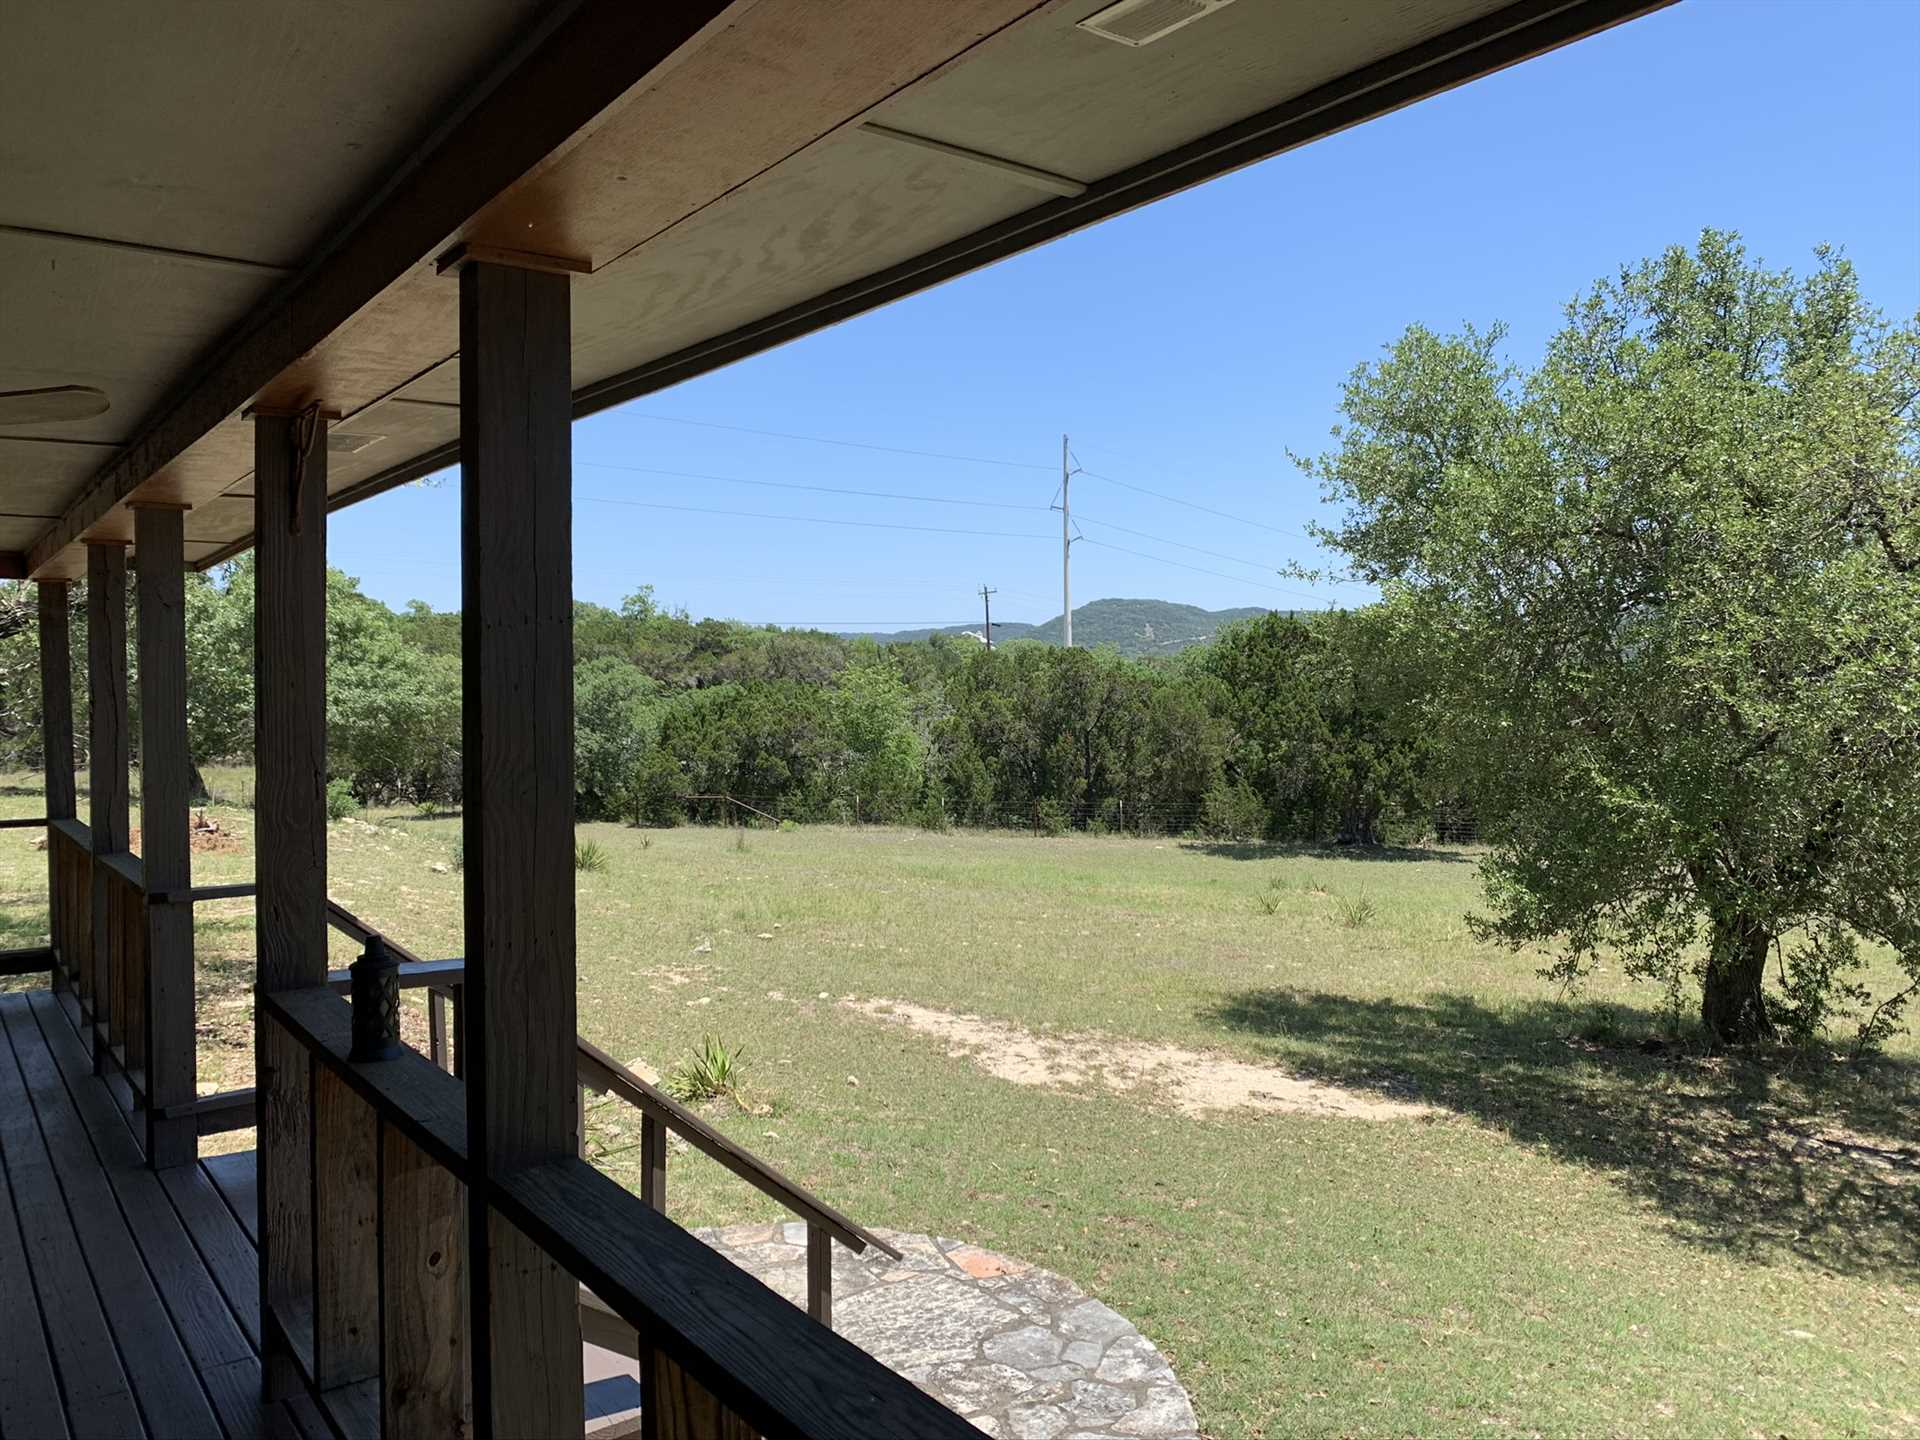 No matter the time of year, or the time of day, the view from the shaded porch shows off the very best of the Texas Hill Country.